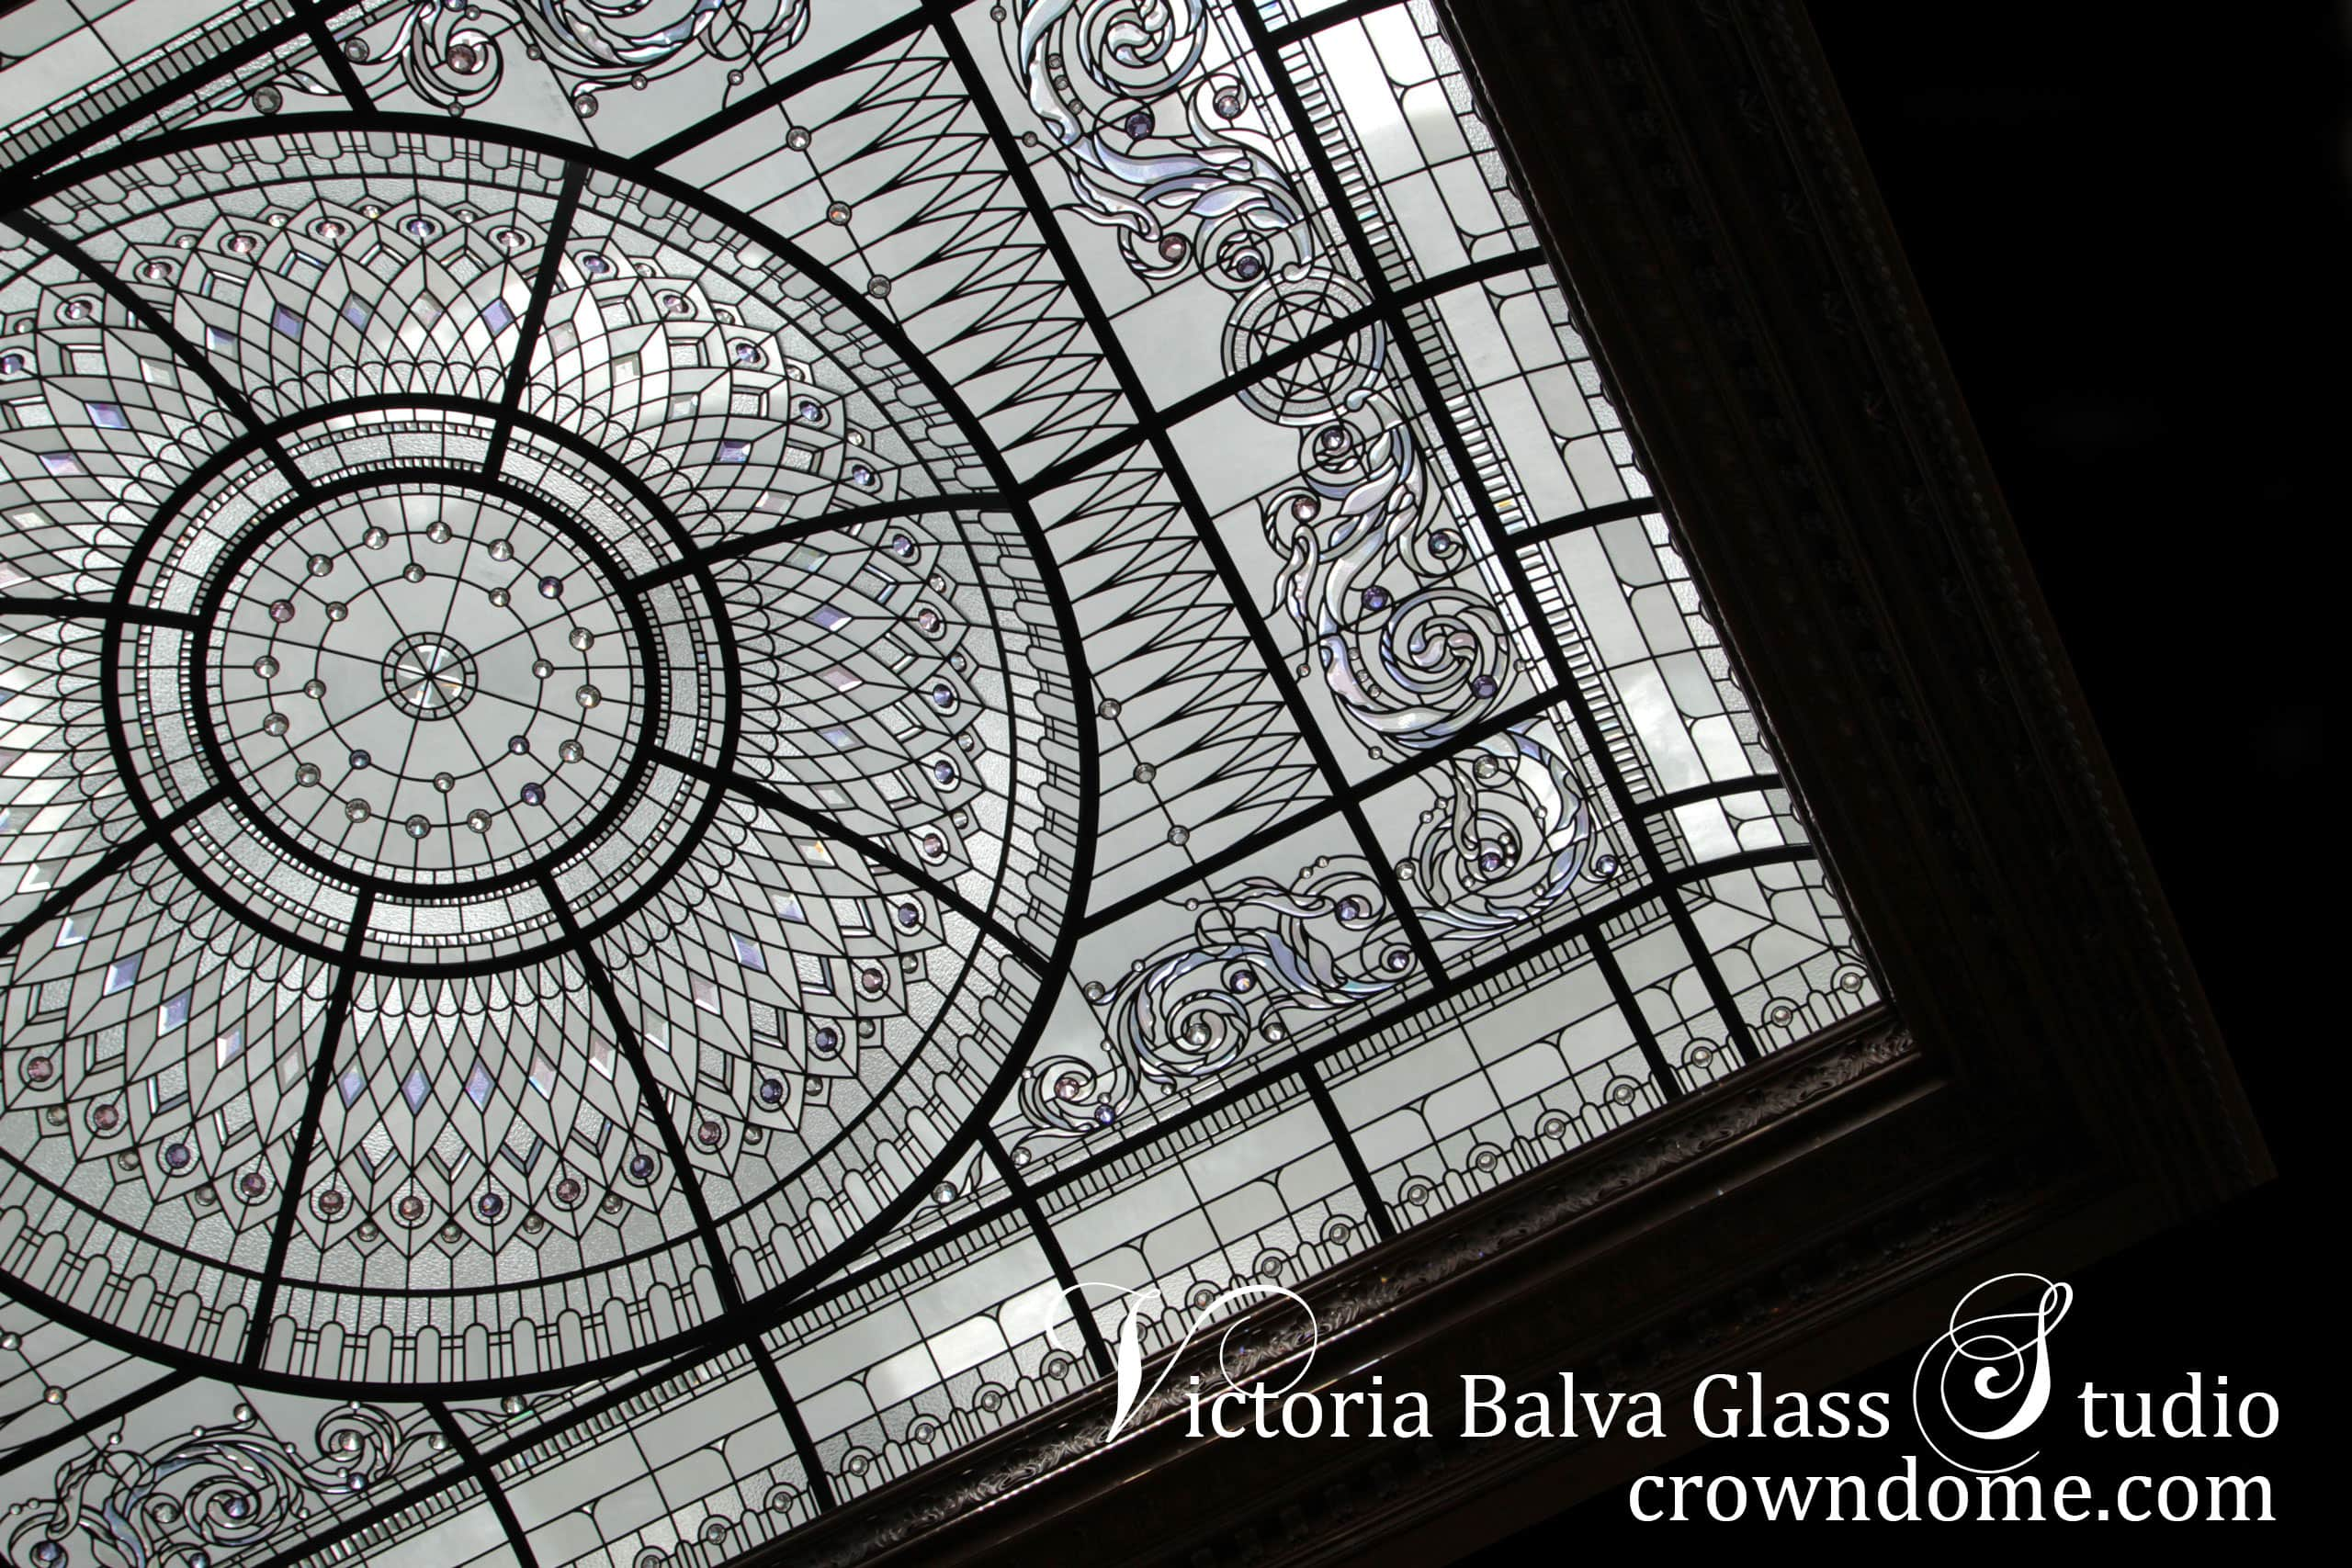 Stained and leaded glass dome skylight intricate design in large scale for a custom built residence with glass dome and curved borders